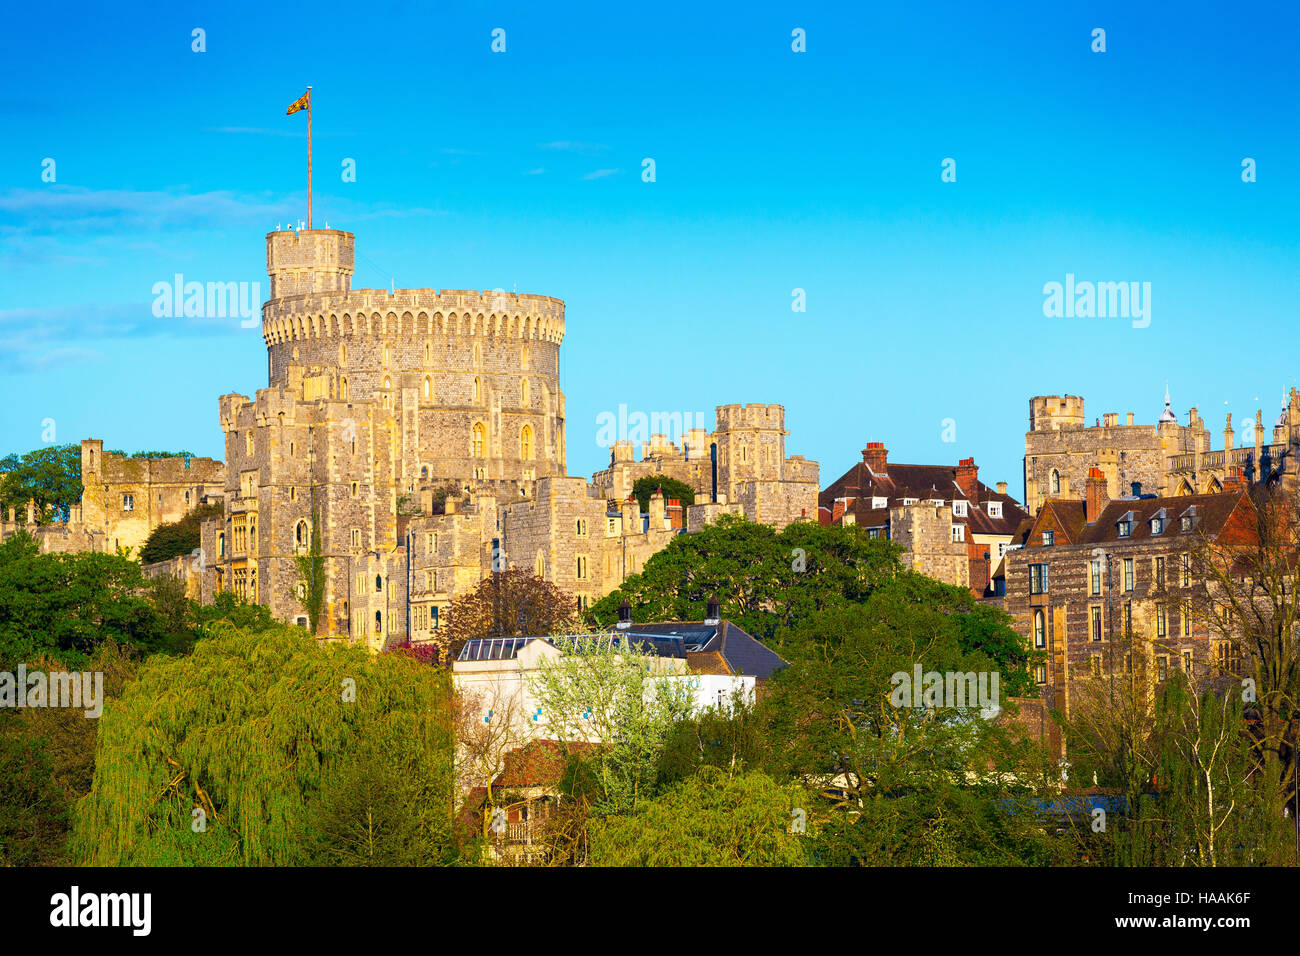 The Round Tower at Windsor Castle. Windsor, Berkshire, England, UK - Stock Image